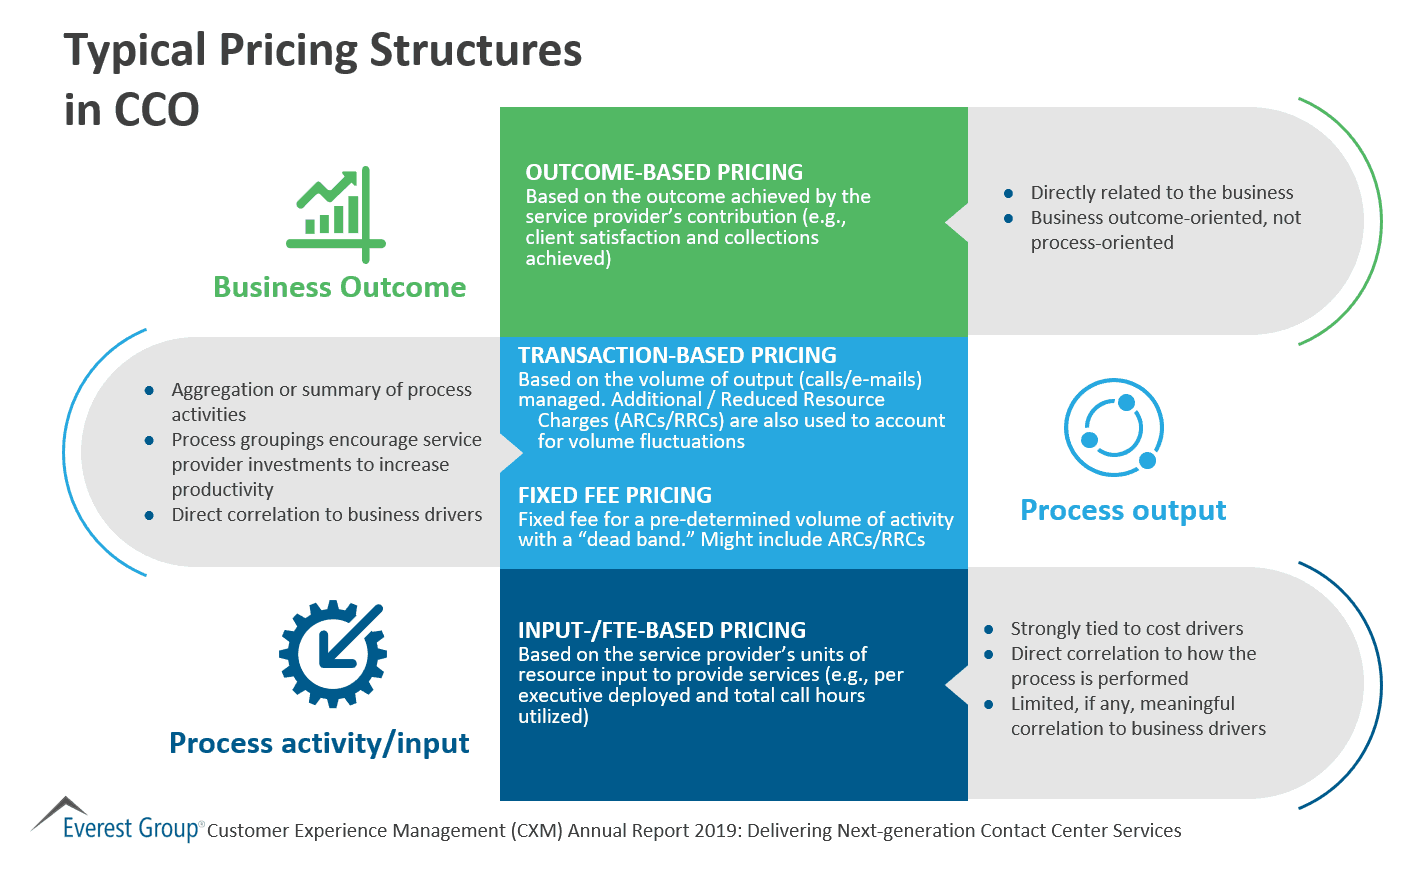 Typical Pricing Structures in CCO